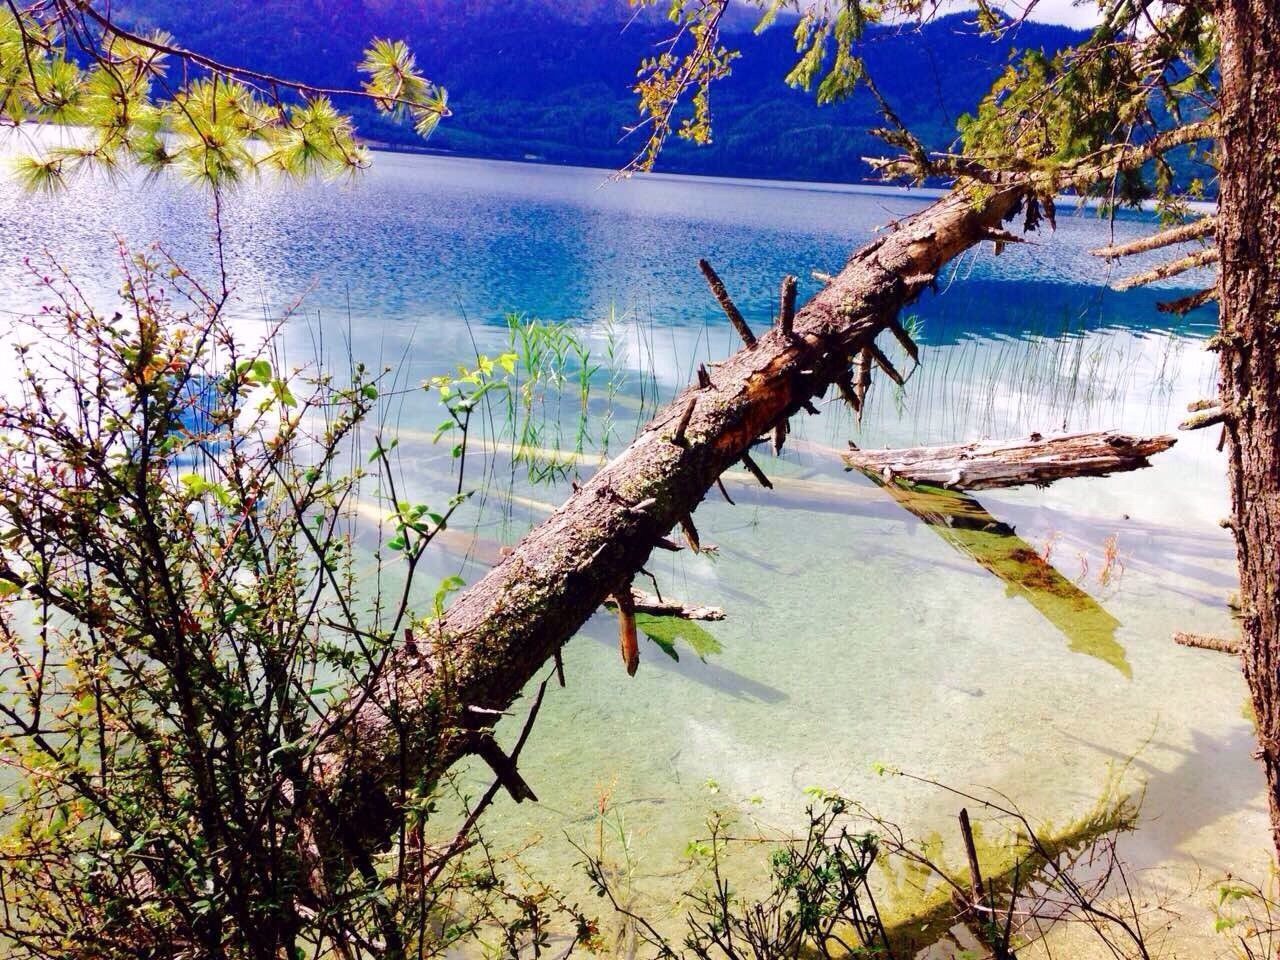 water, lake, nature, tree, beauty in nature, tranquil scene, tranquility, reflection, no people, outdoors, plant, branch, scenics, day, growth, flower, sky